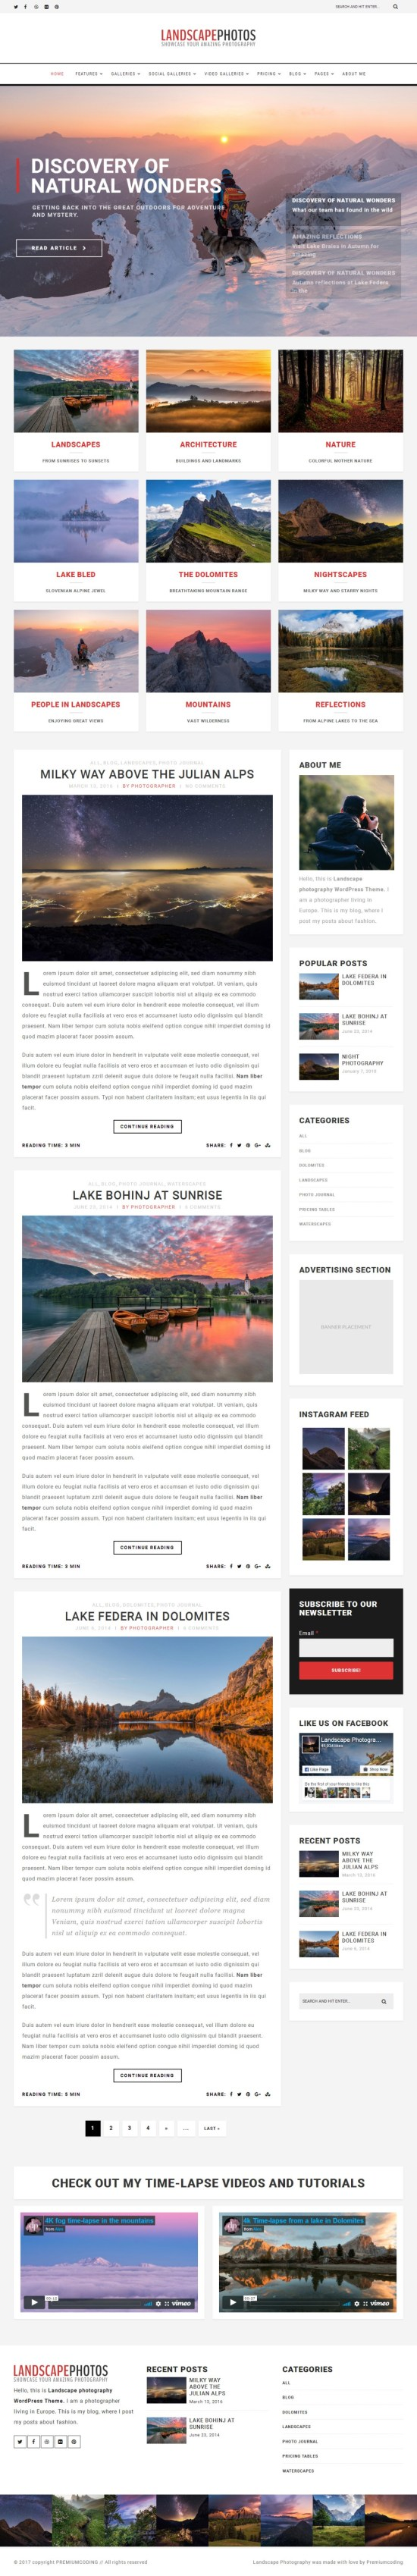 landscape photo blog templatemonster 01 - Landscape Photography WordPress Theme